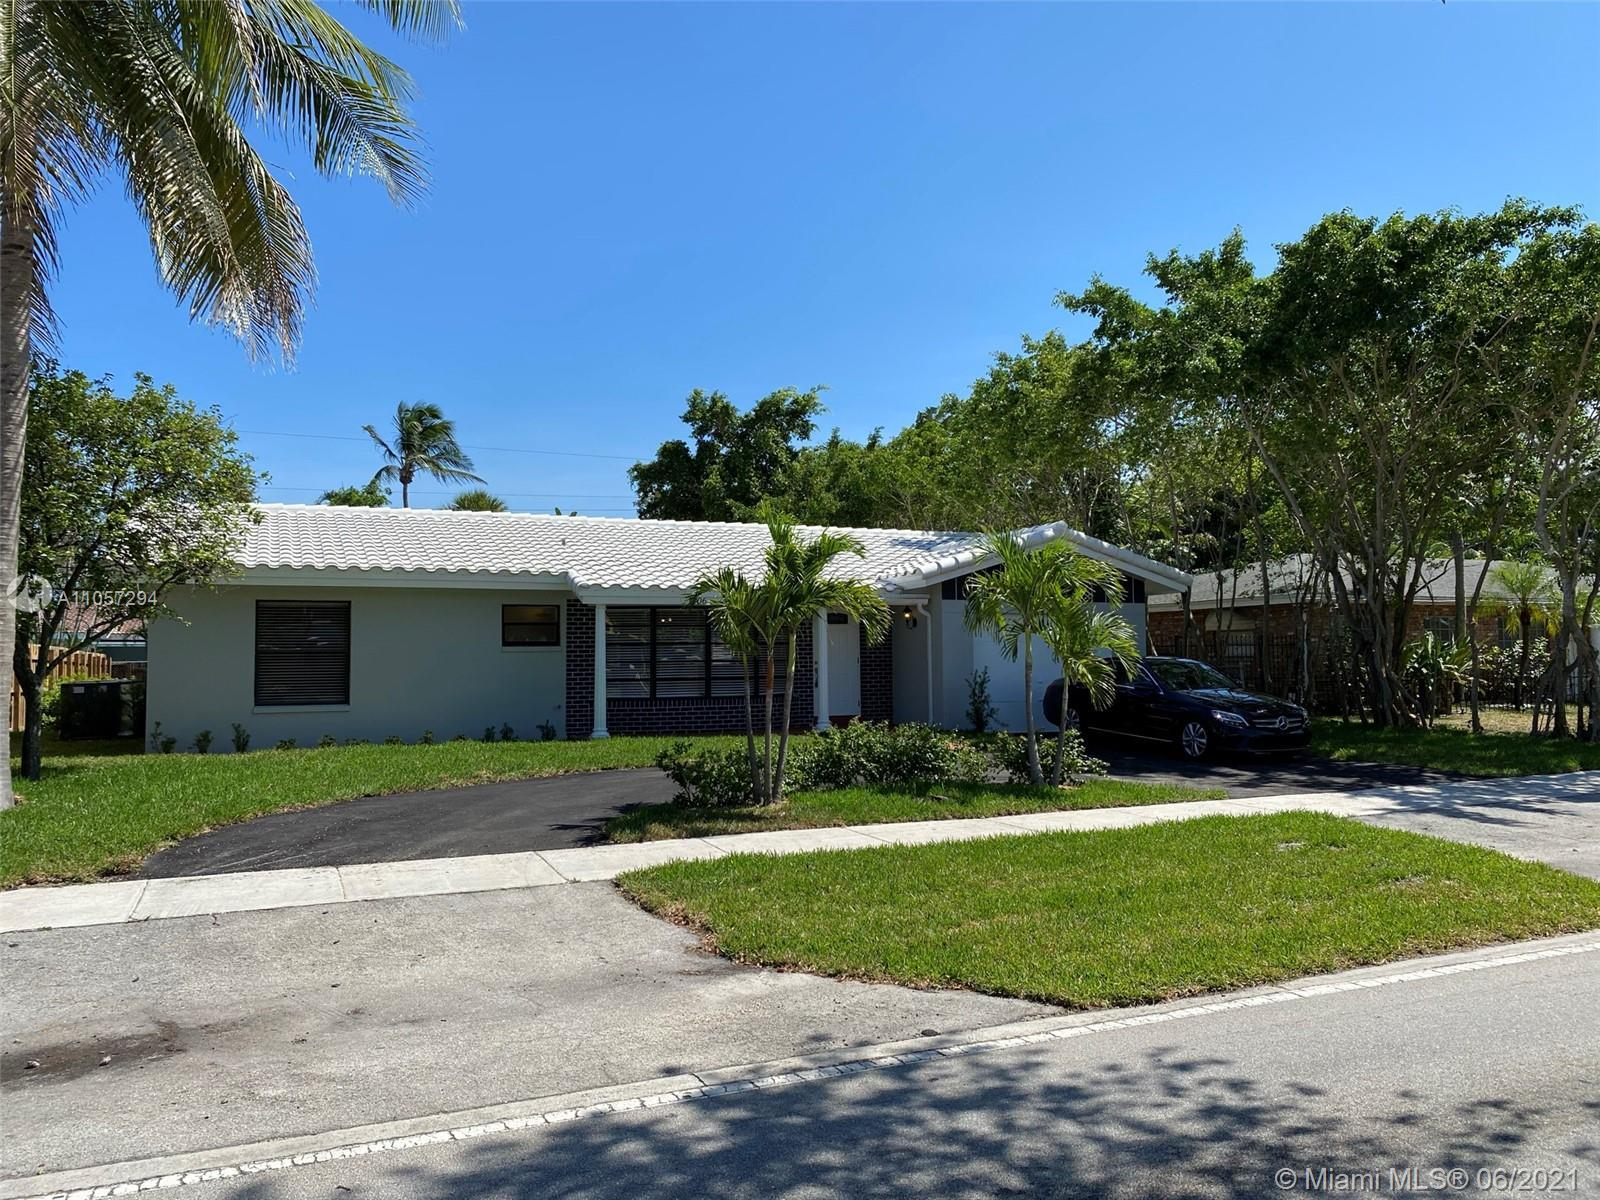 Luminous elegant remodeled one story single family home with 3 bedroom and 3 bathroom. Two master be